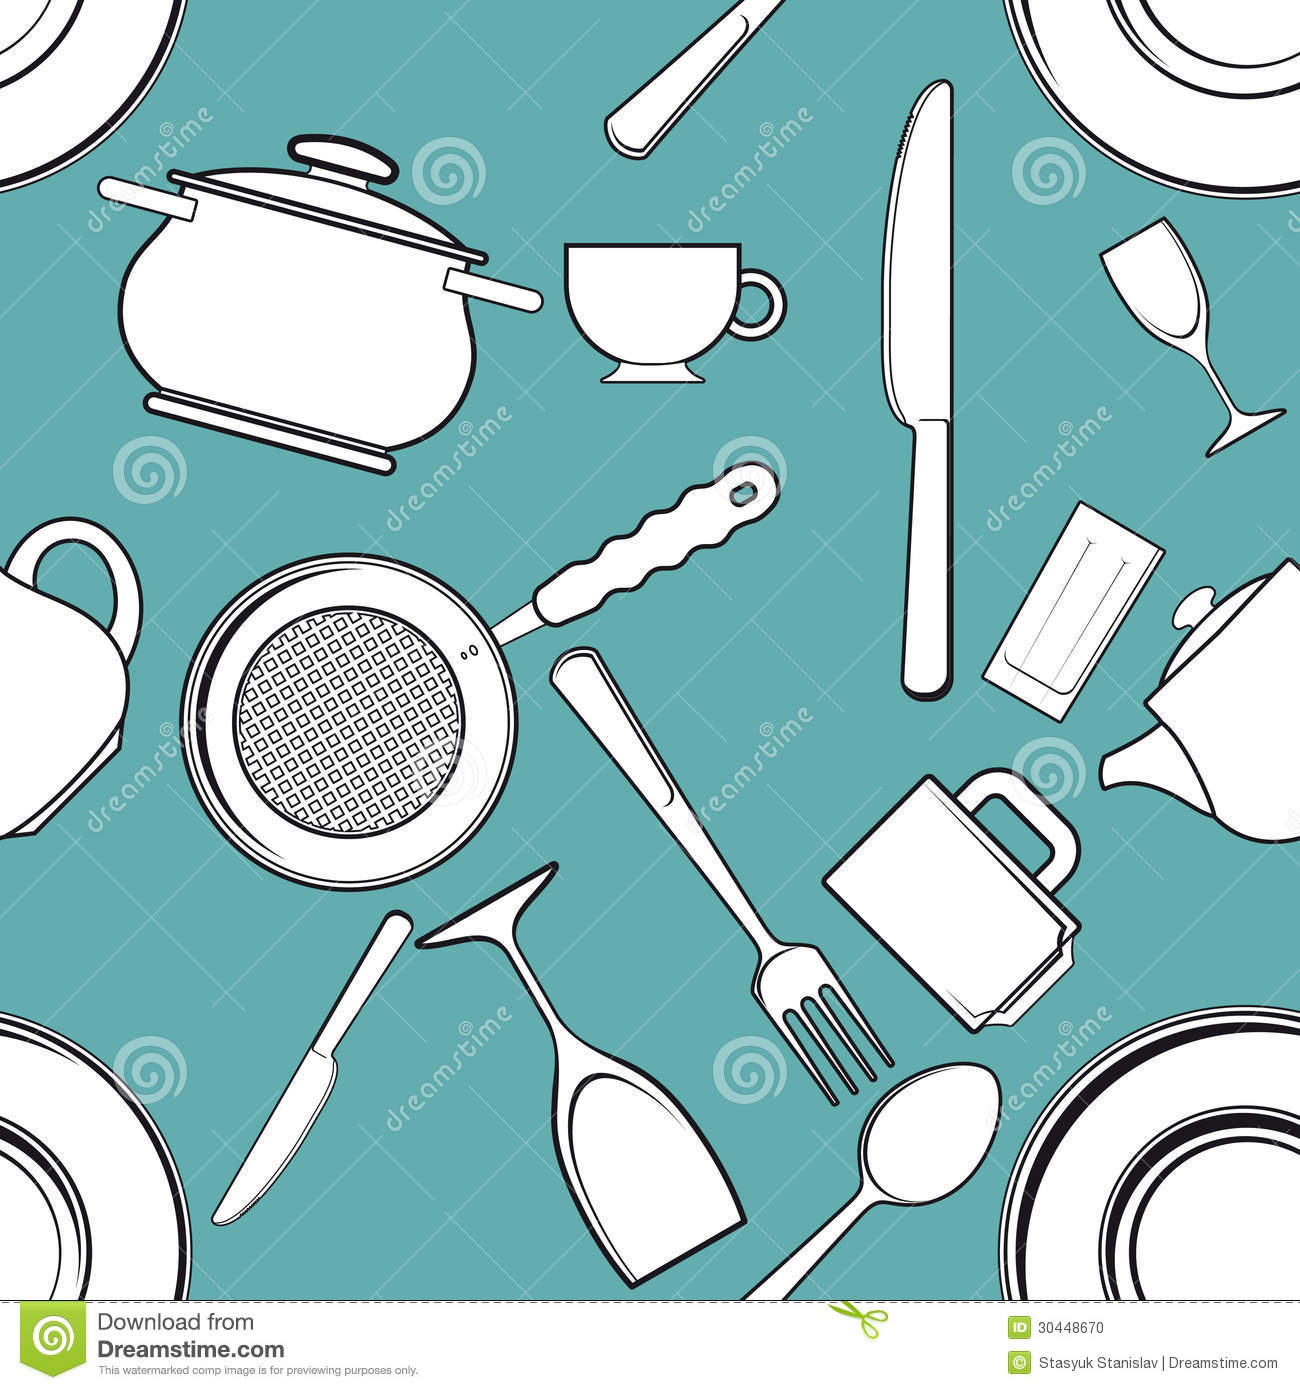 Seamless Background With Antique Kitchen Utensils Stock Vector ...